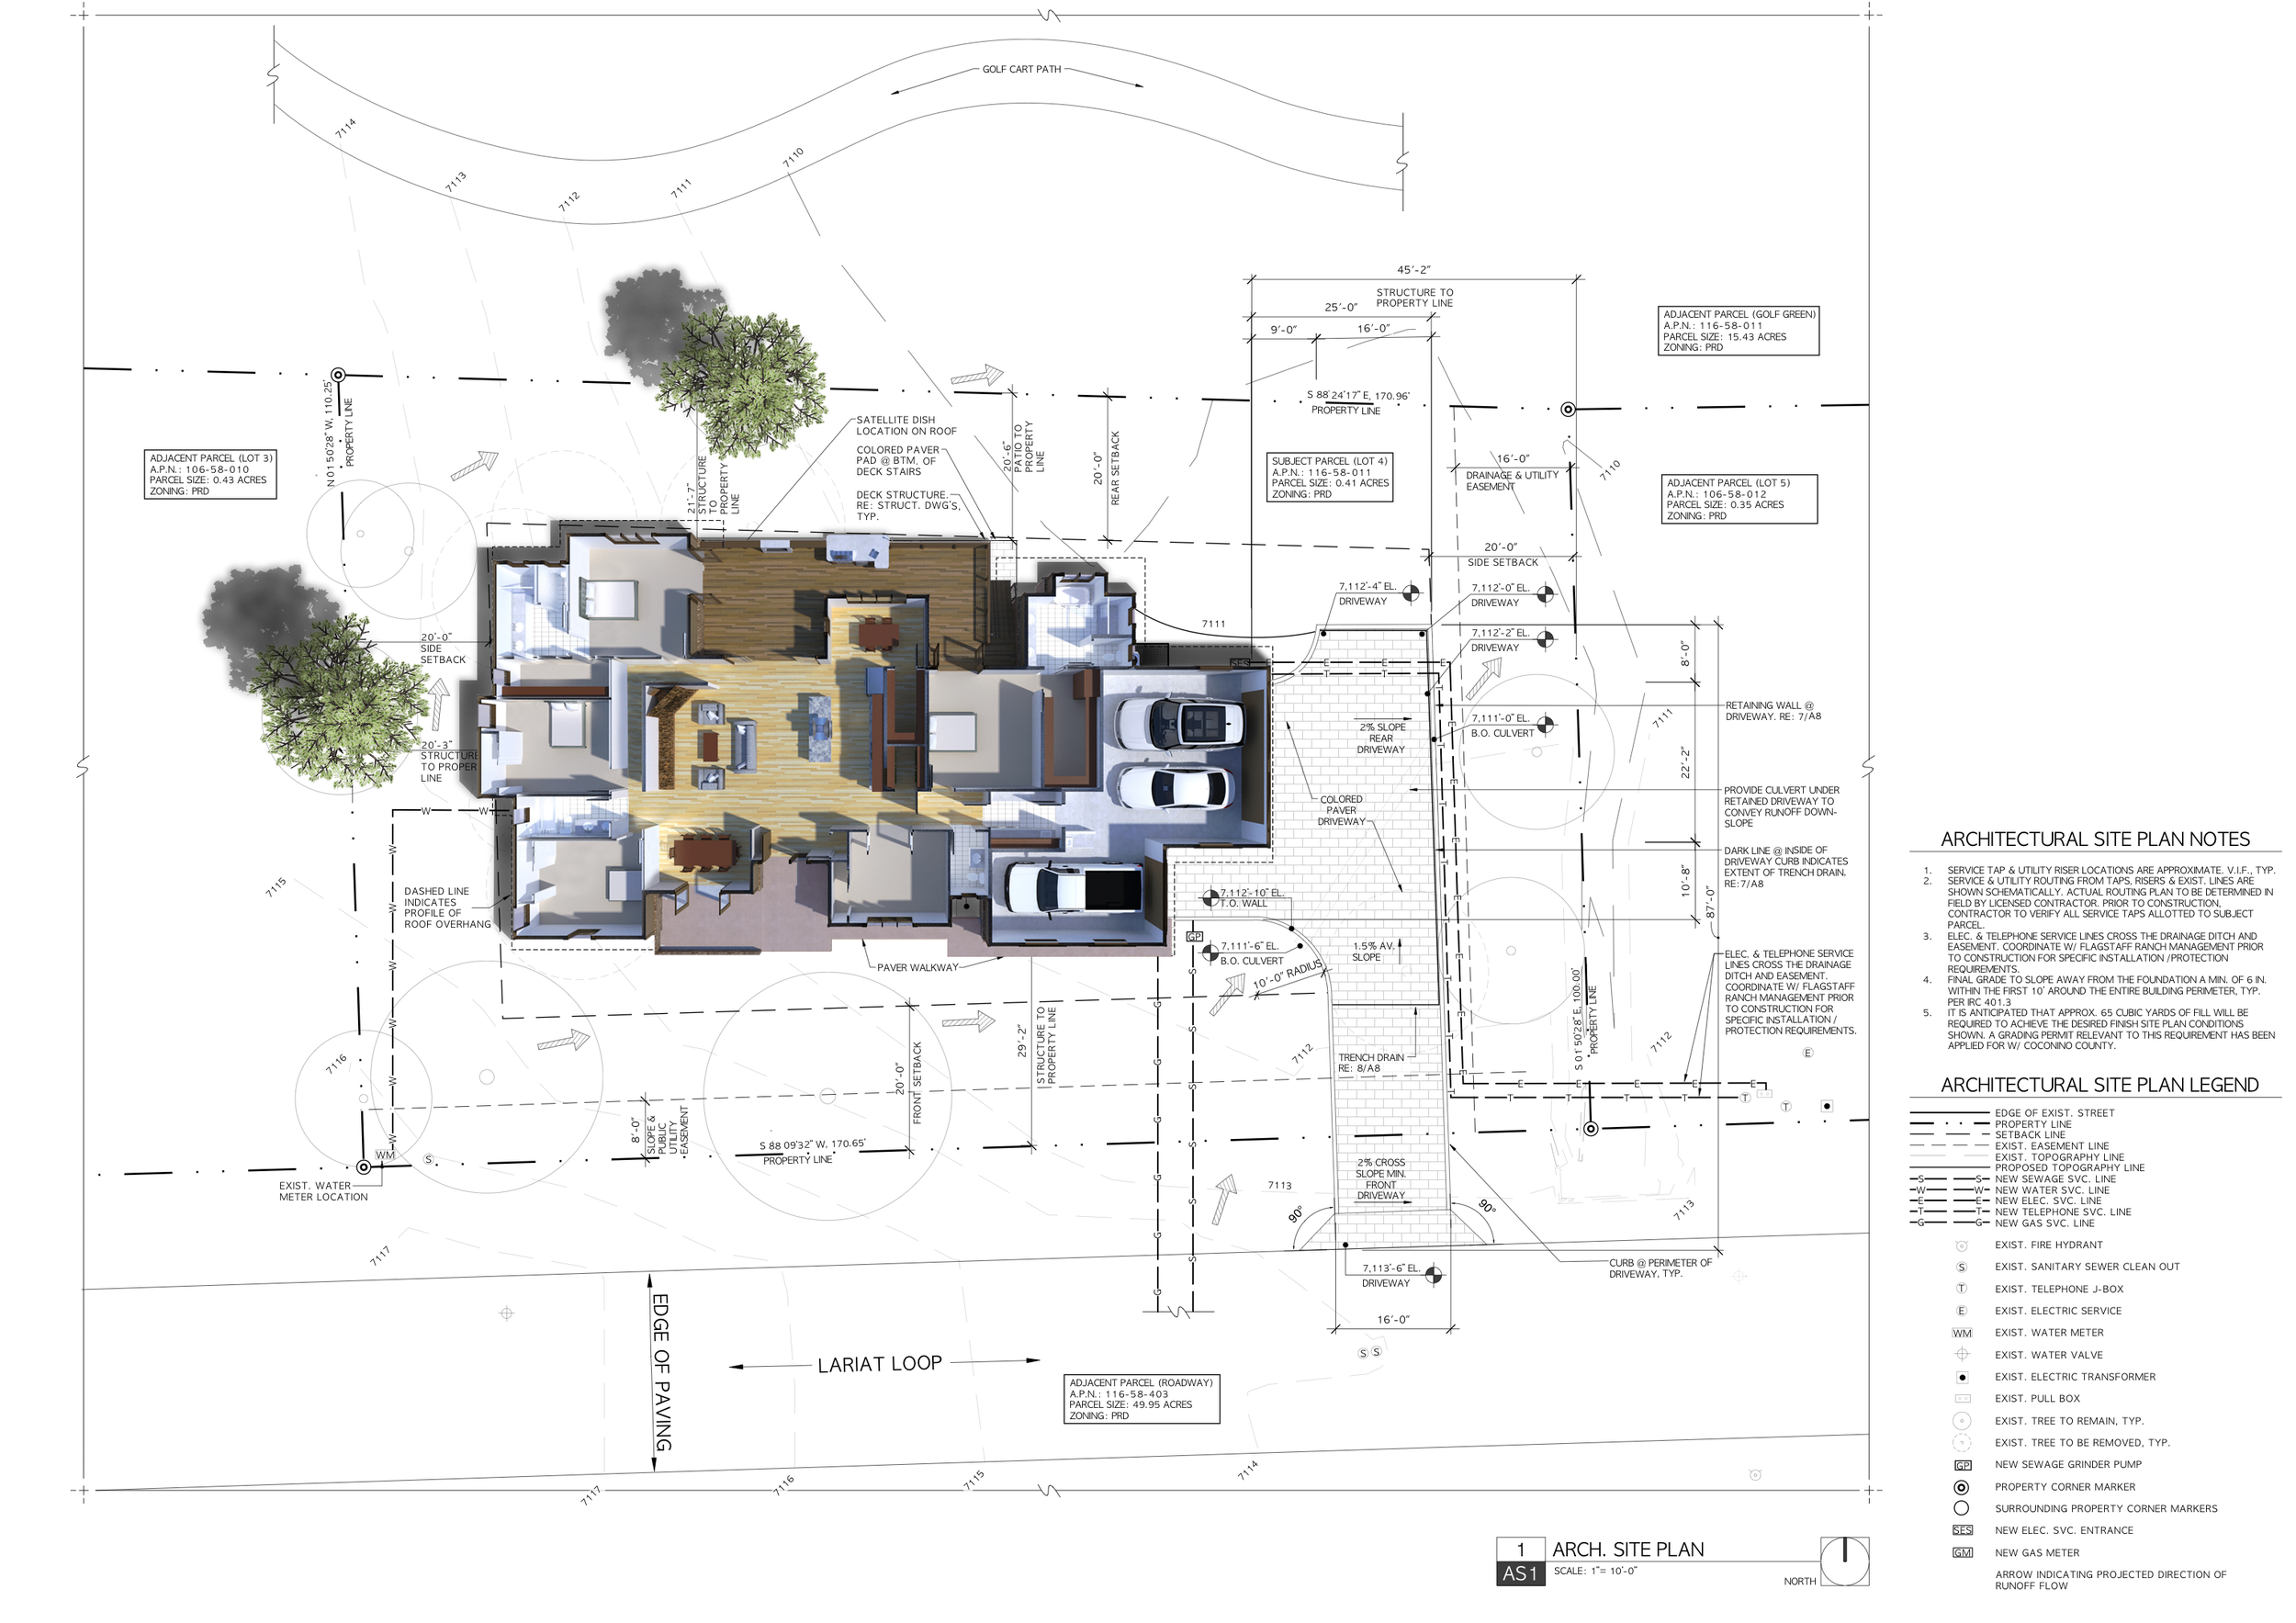 The extruded floor plan superimposed on the project site plan.